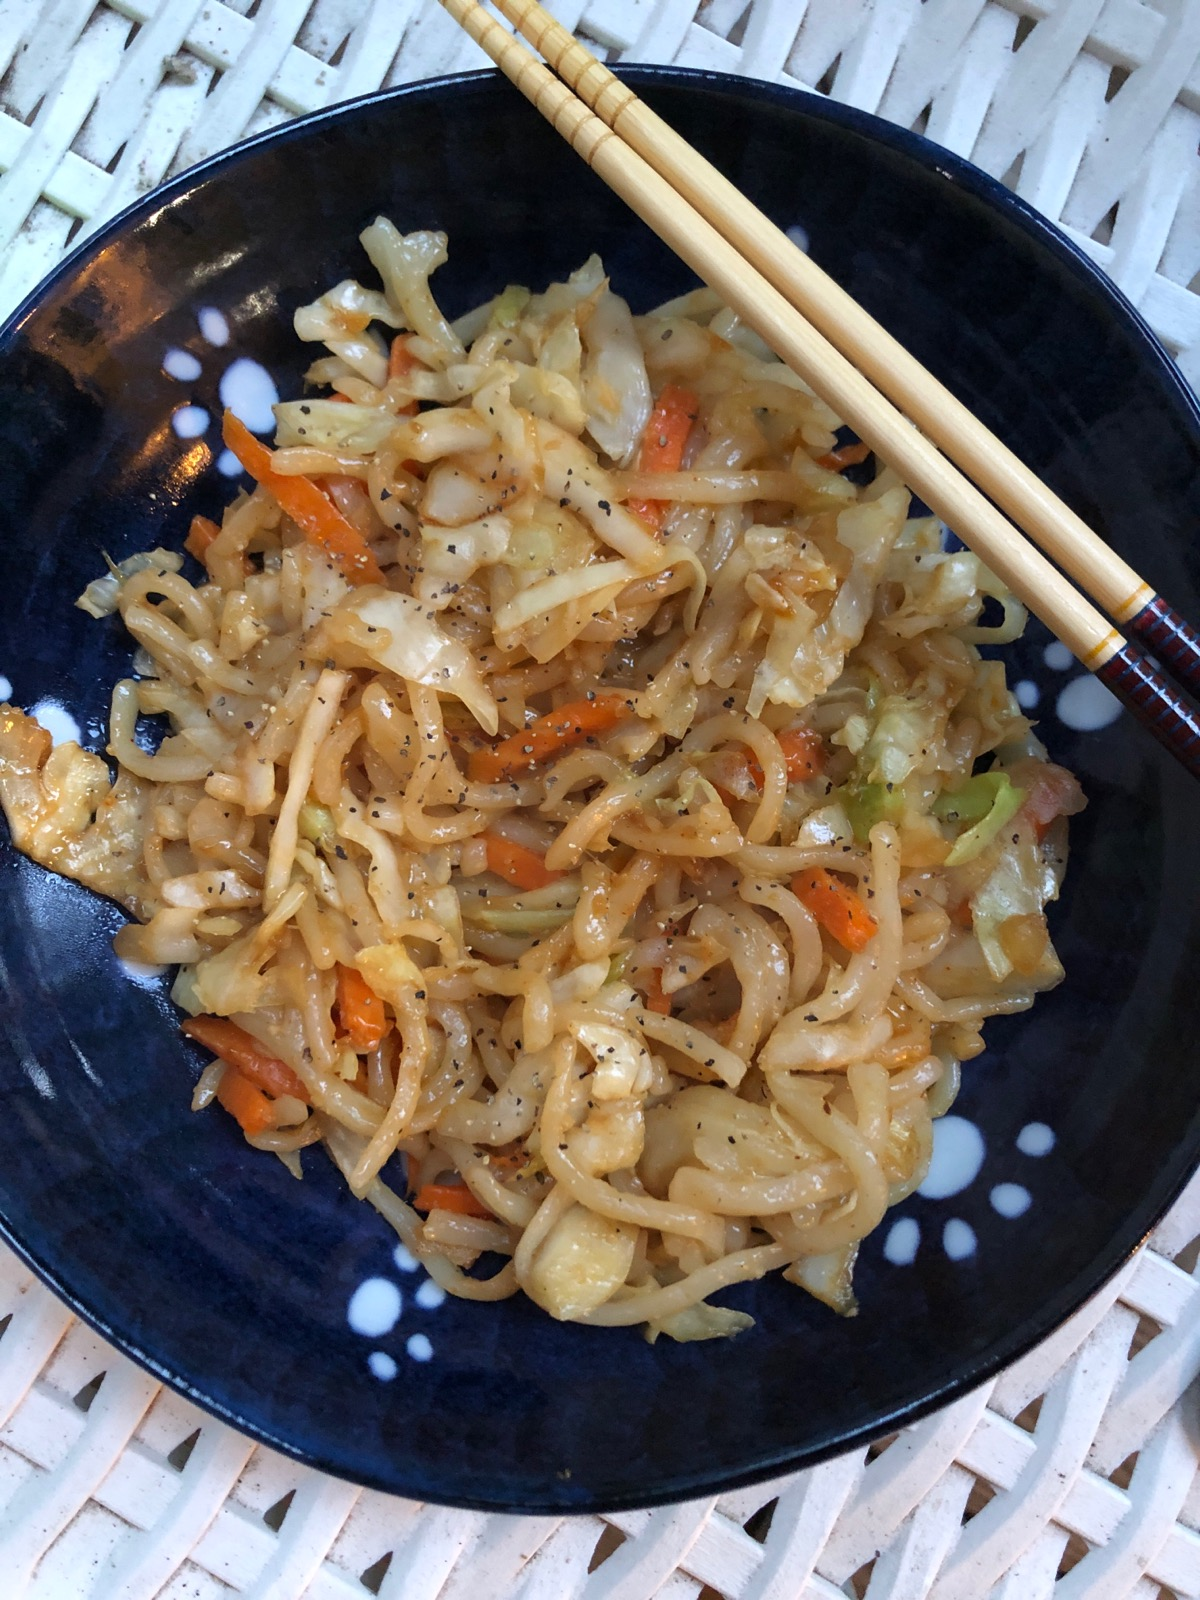 """Ready in 30 Minutes.Shredded cabbage, bell peppers, carrots, garlic, and onions combine with strips of boneless, skinless chicken breast meat and udon noodles in this simple dish! """"This delicious stir-fry is similar to yakisoba, but is made with thick, white udon noodles and tossed with a much simpler sauce,"""" says Diana71."""